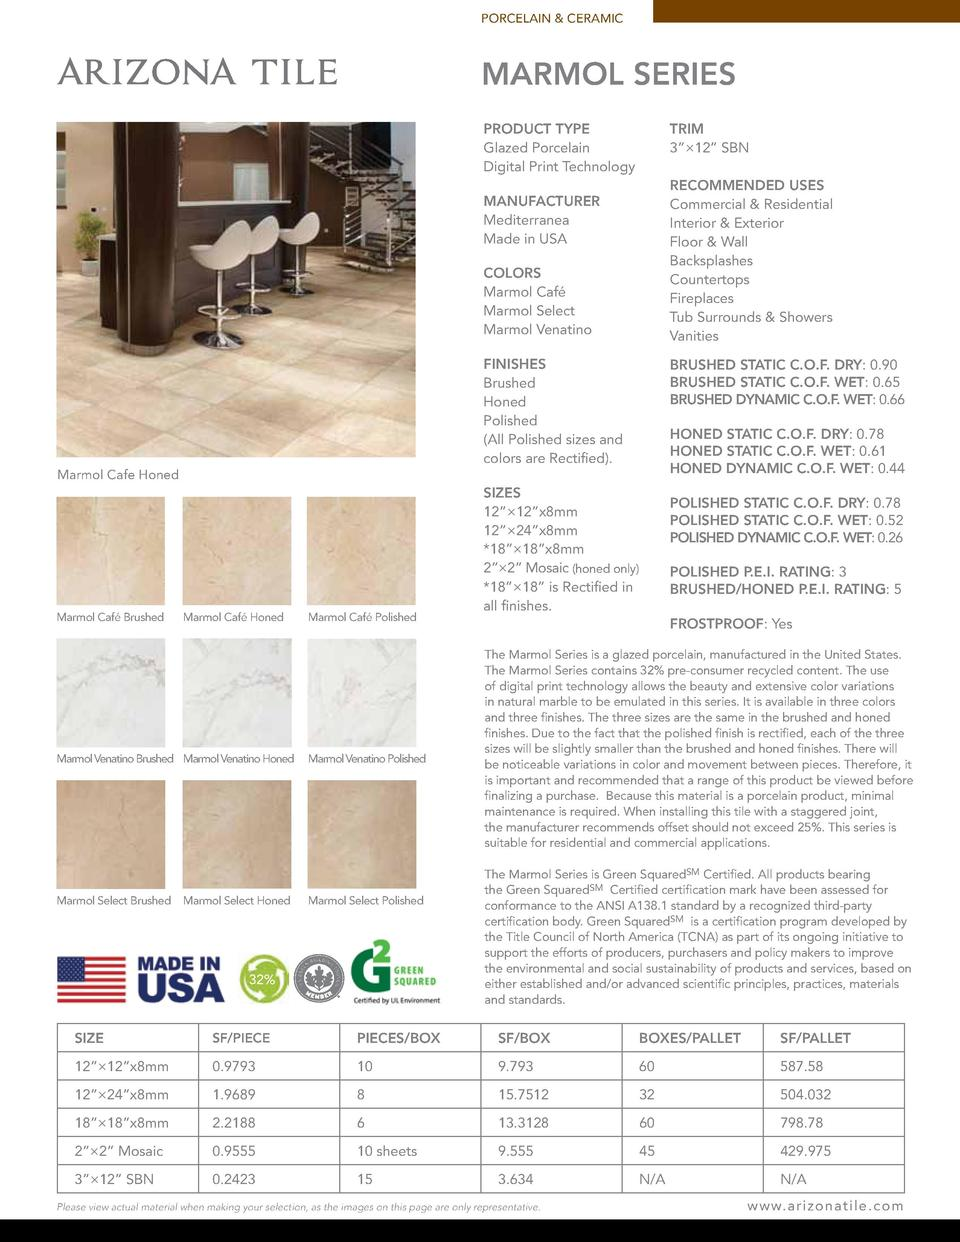 PORCELAIN   CERAMIC  MARMOL SERIES PRODUCT TYPE Glazed Porcelain Digital Print Technology  TRIM 3     12    SBN RECOMMENDE...